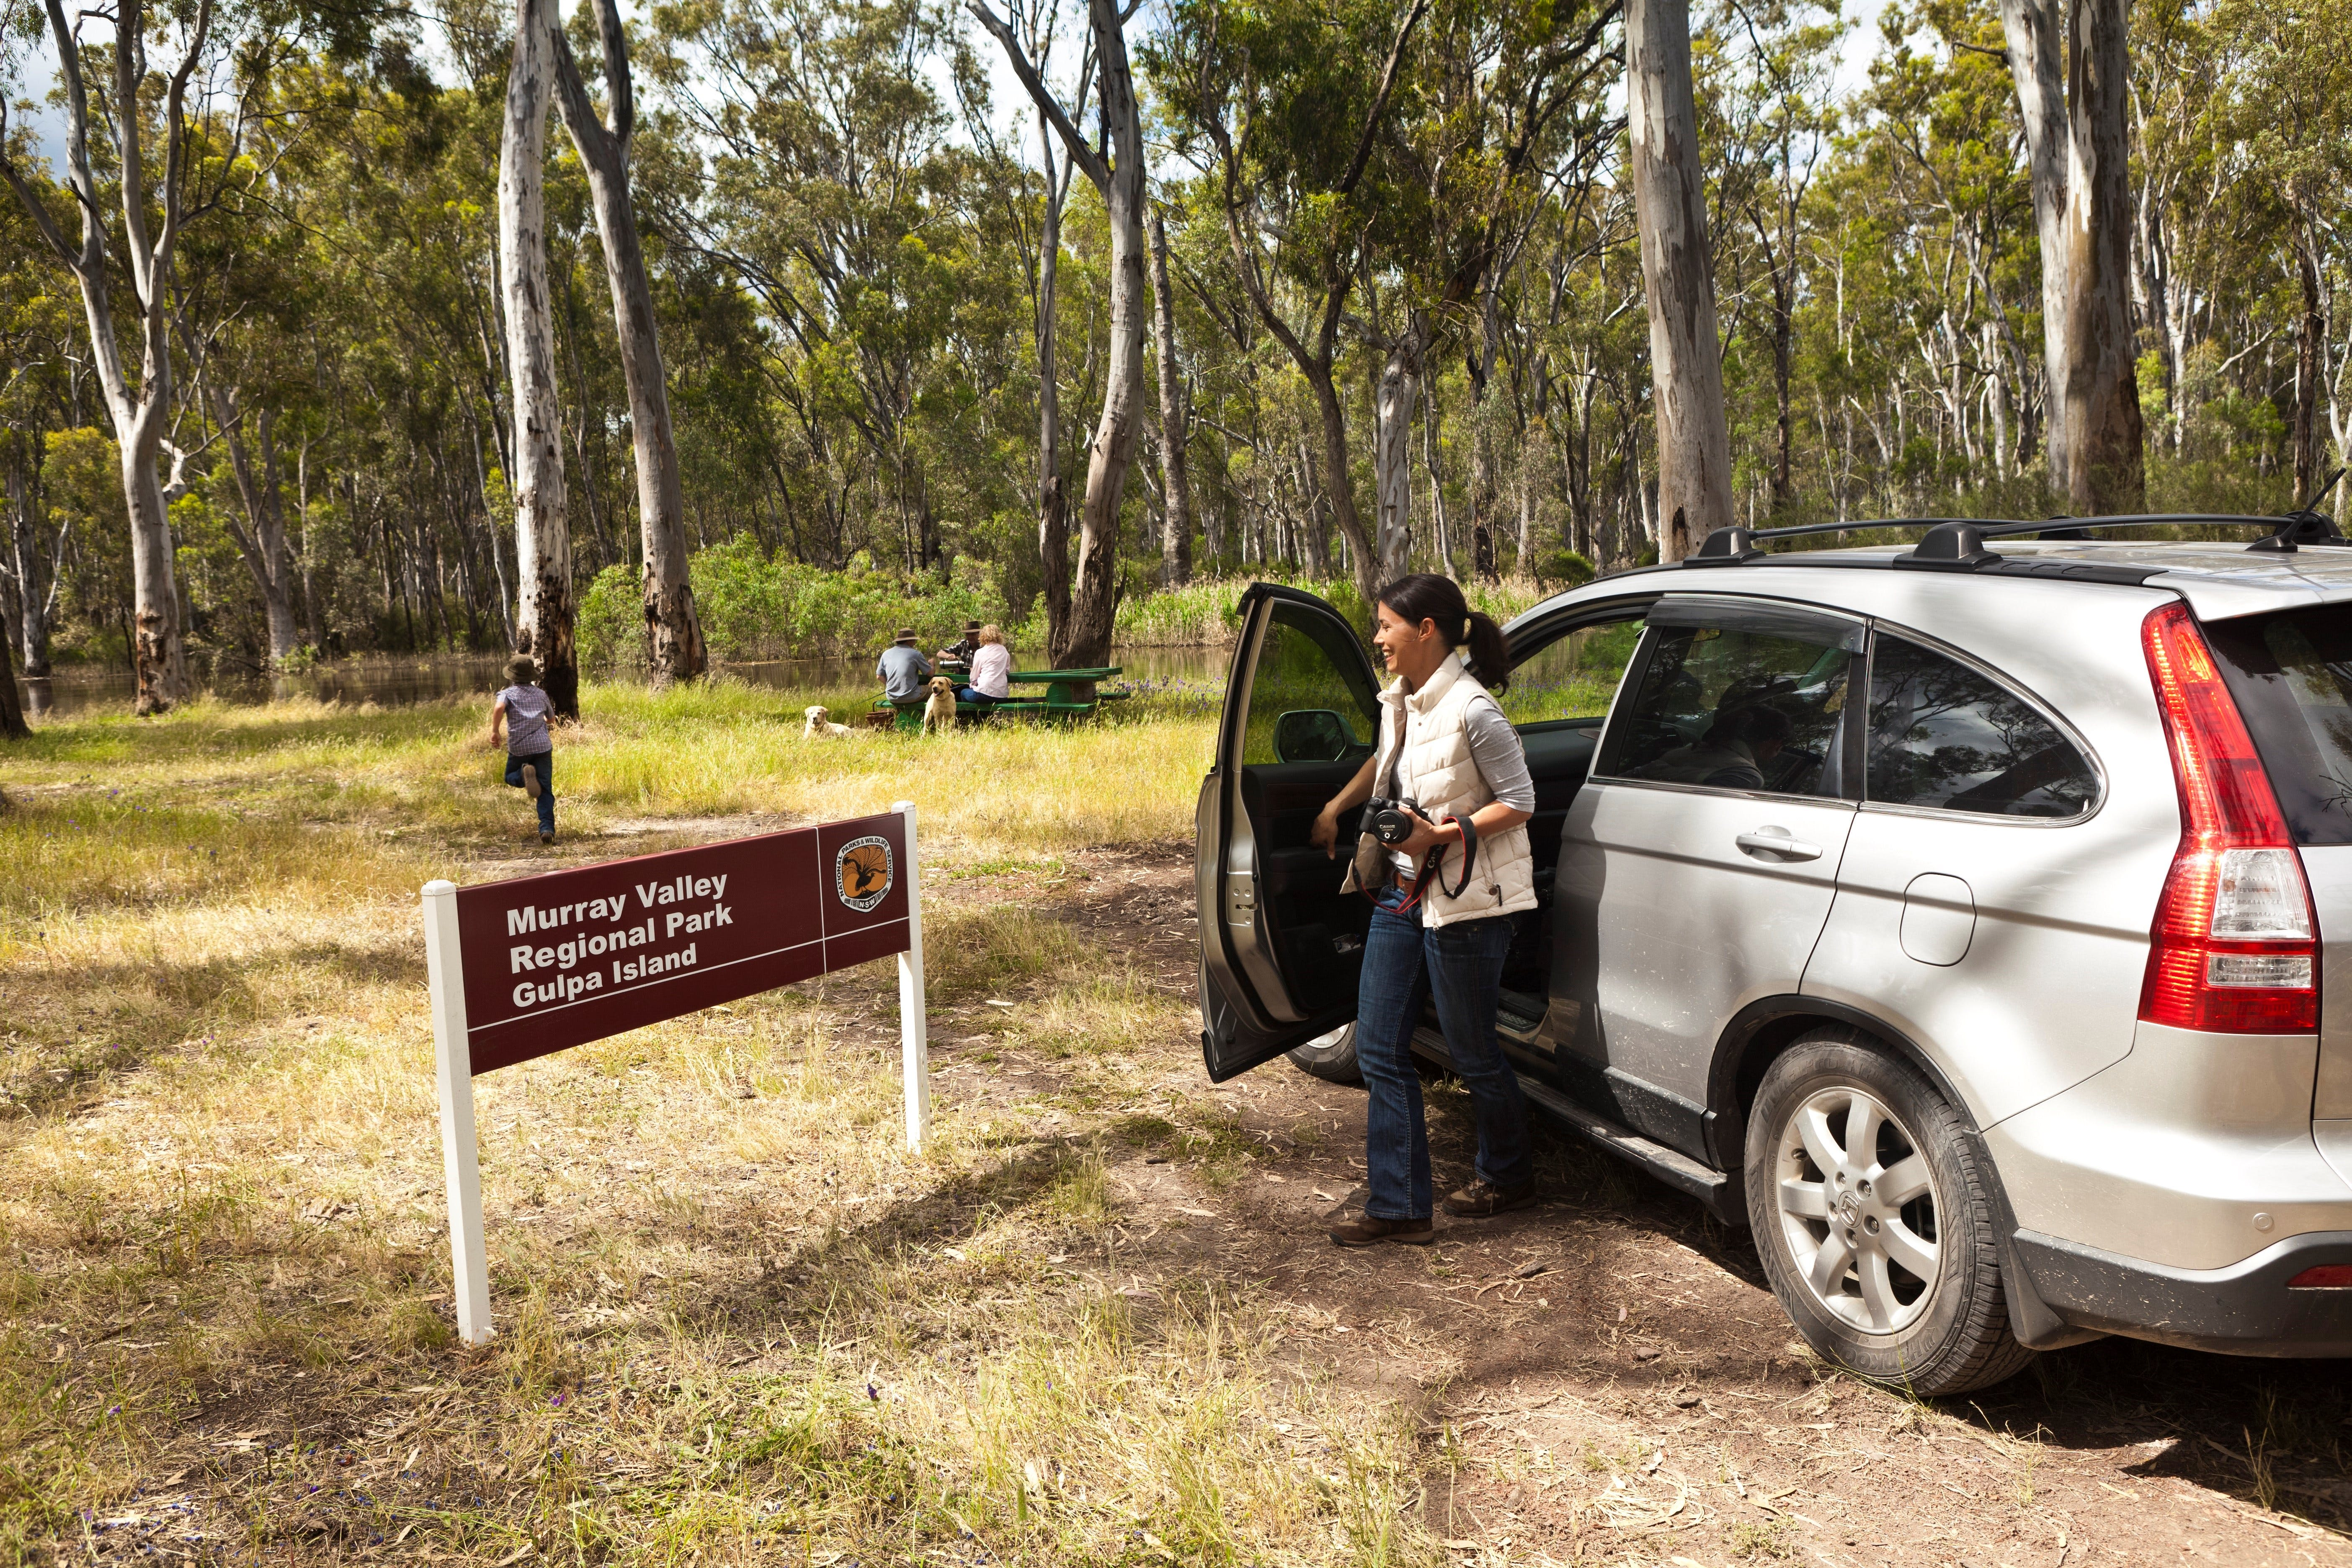 Murray Valley Regional Park - Sydney Tourism